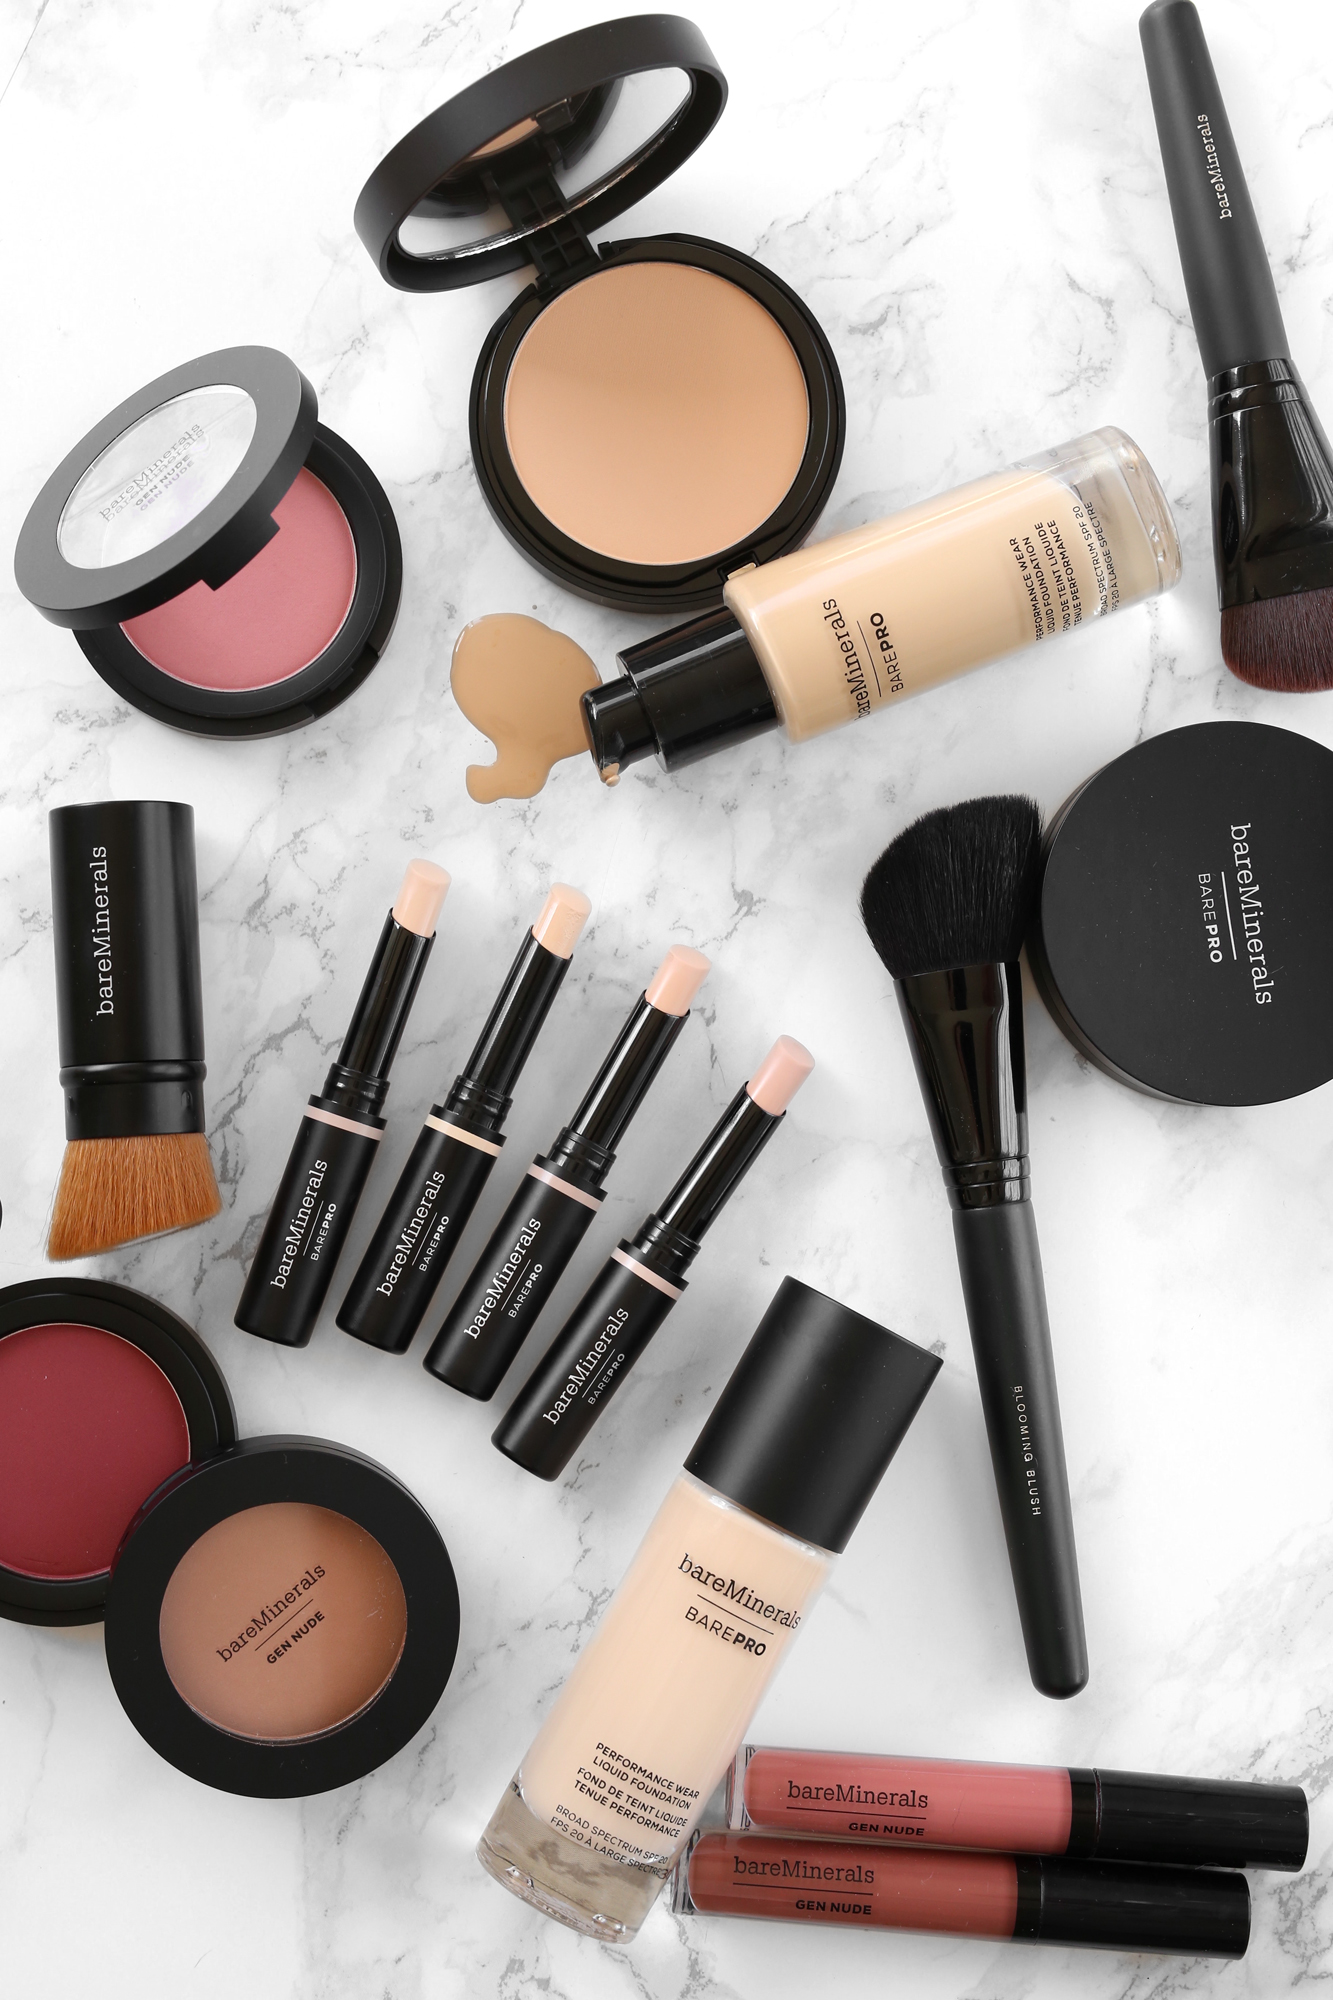 woahstyle.com - bare minerals new full coverage concealer, Gen Nude blush and patent lip lacquer, BAREPRO powder foundation with makeup brushes_8039.jpg